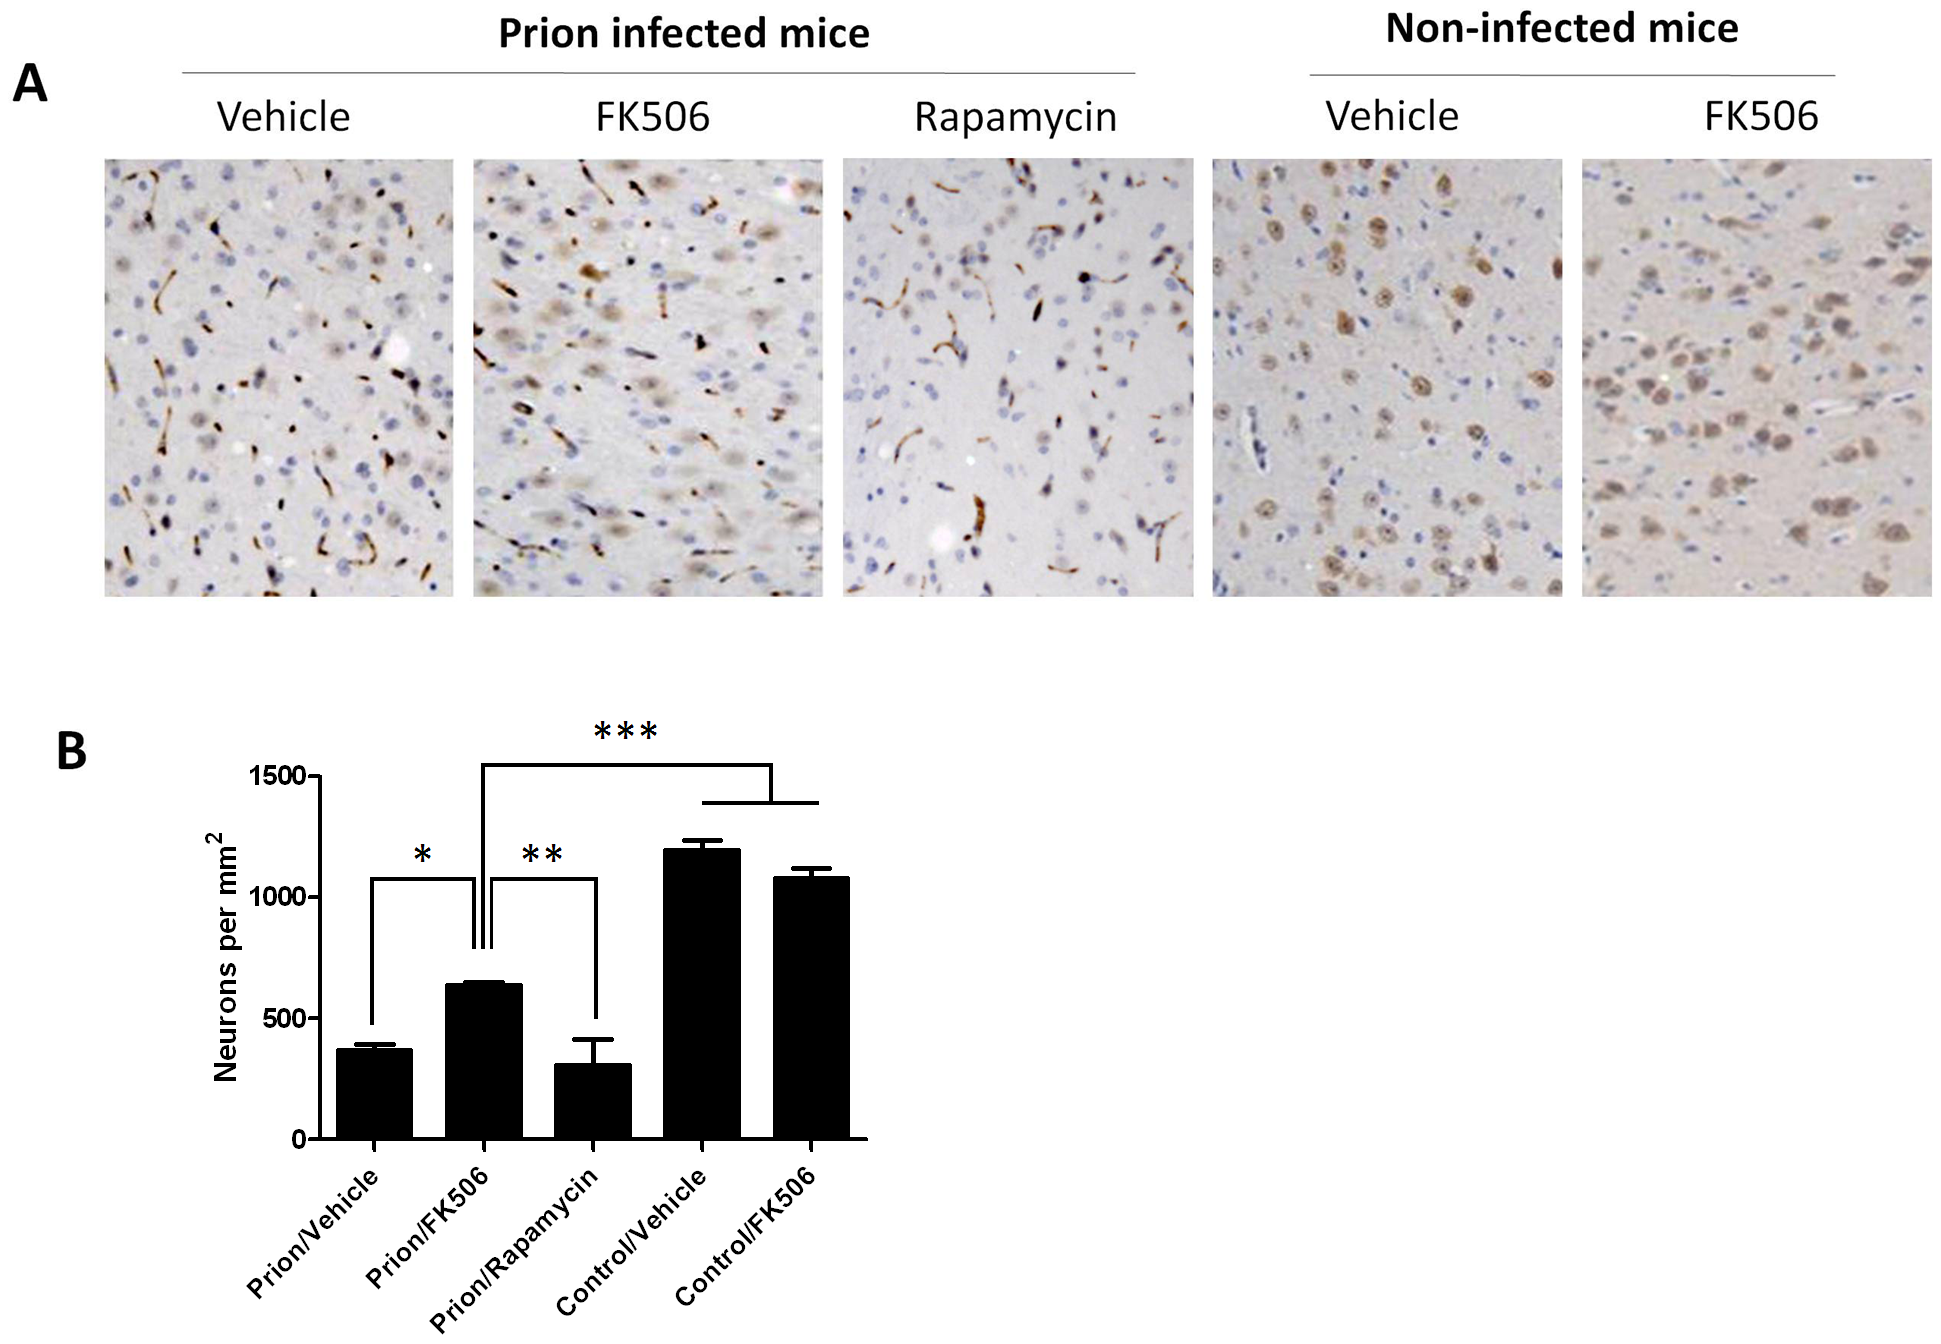 Treatment with FK506 decreases prion-induced neuronal loss.